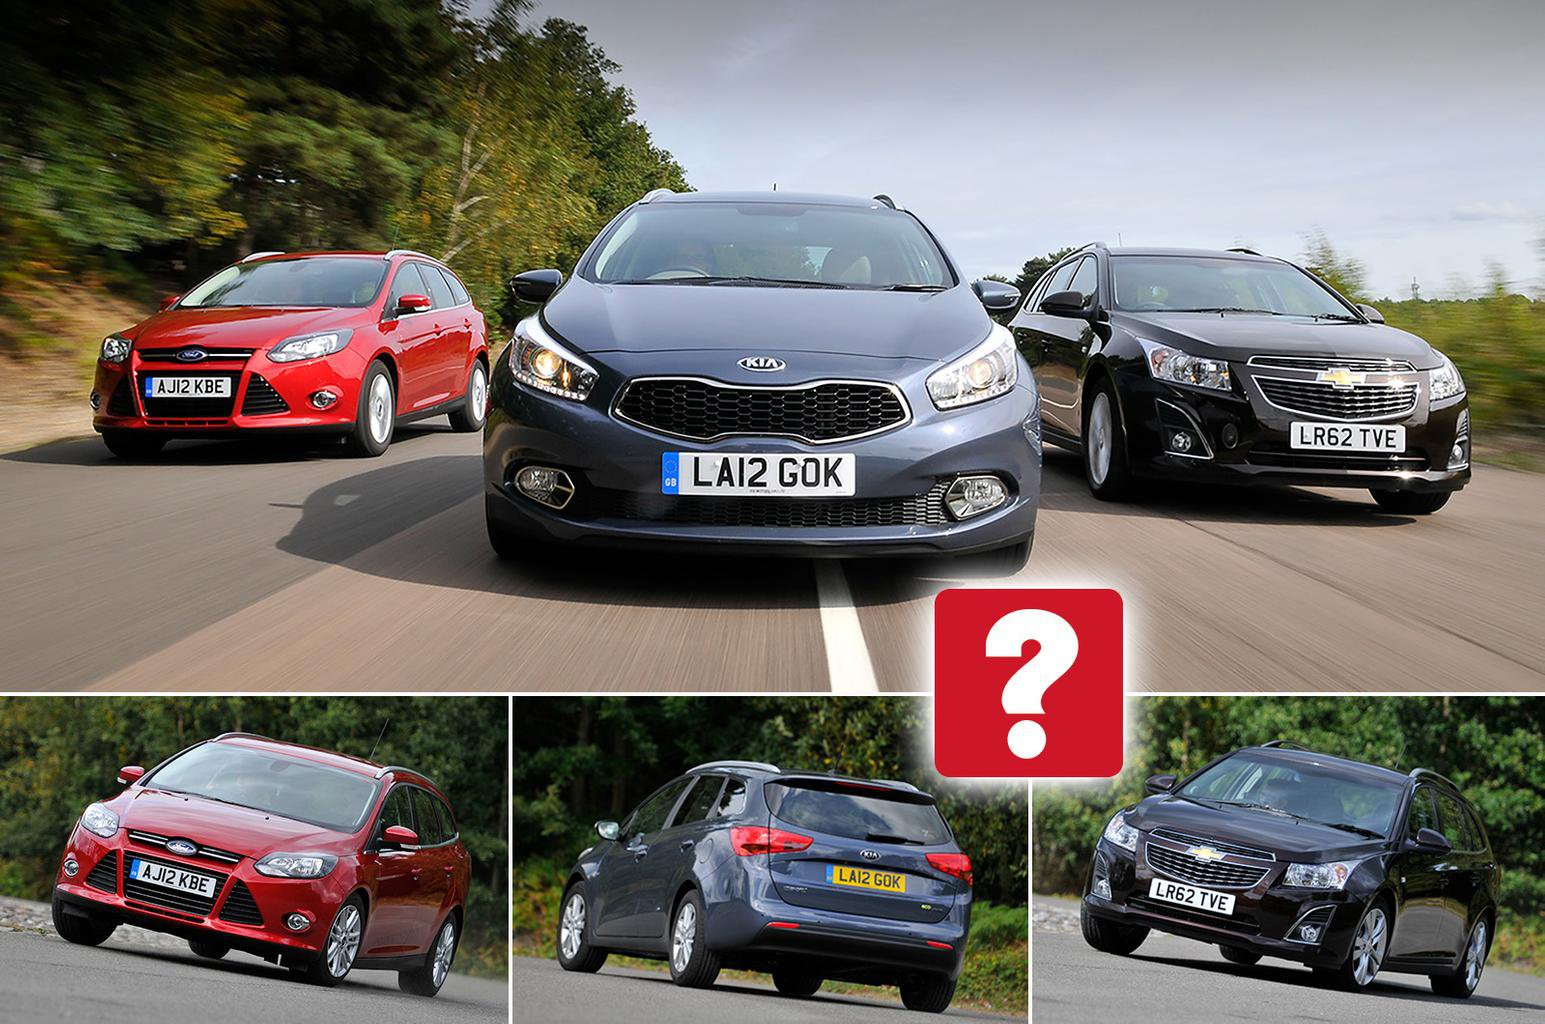 Used Ford Focus Estate vs Kia Cee'd SW vs Chevrolet Cruze SW